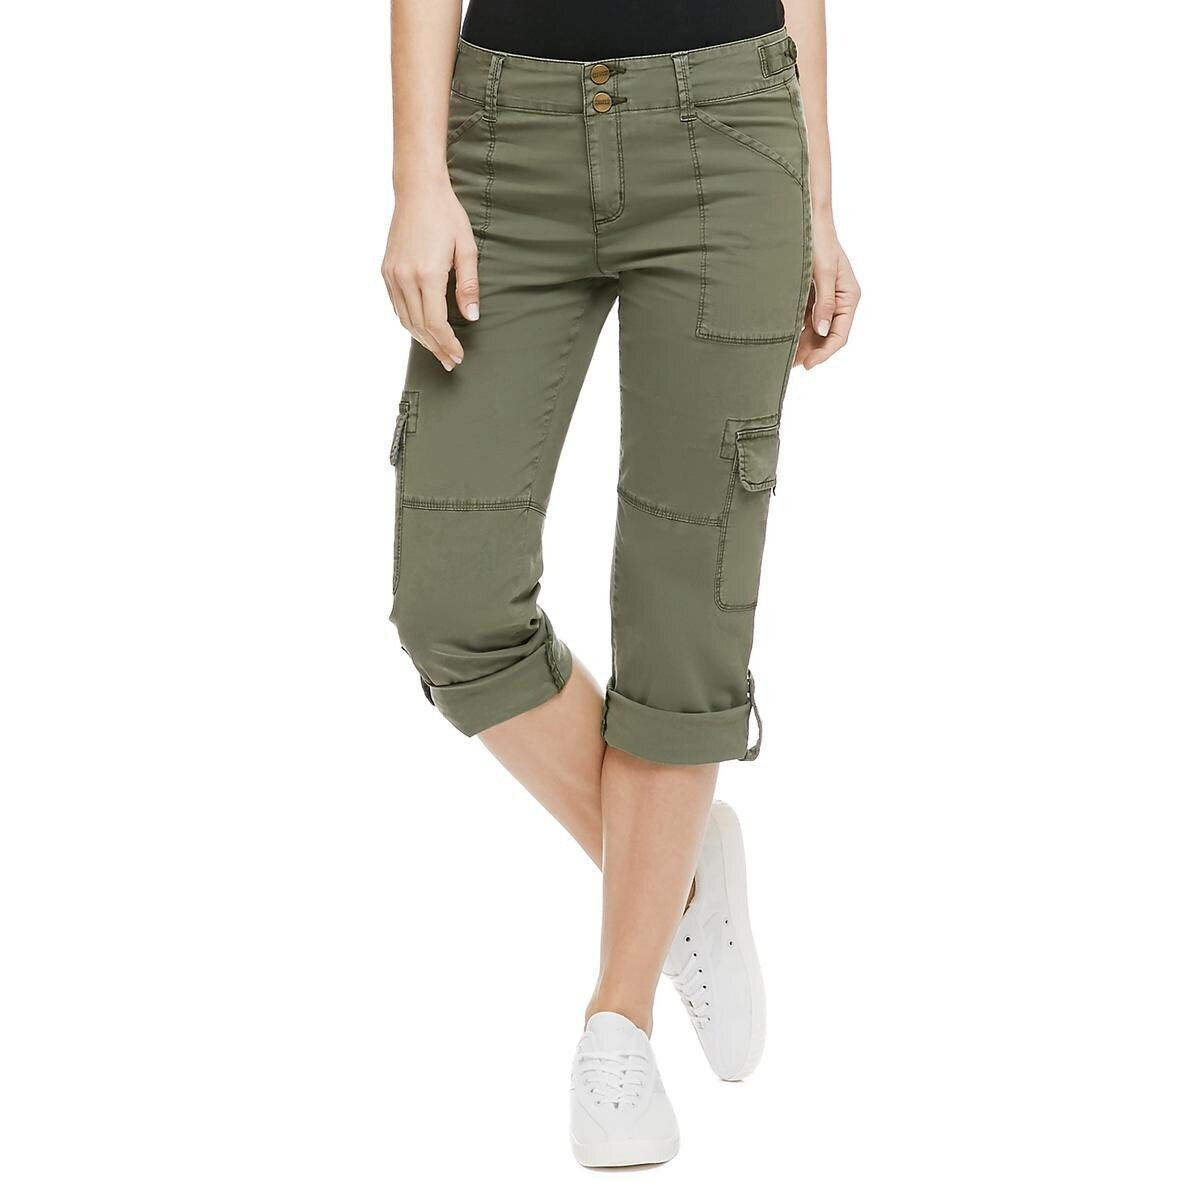 40b901512598a Shop Sanctuary Womens Cargo Pants Crop Pockets - Free Shipping On Orders  Over  45 - Overstock - 15033947